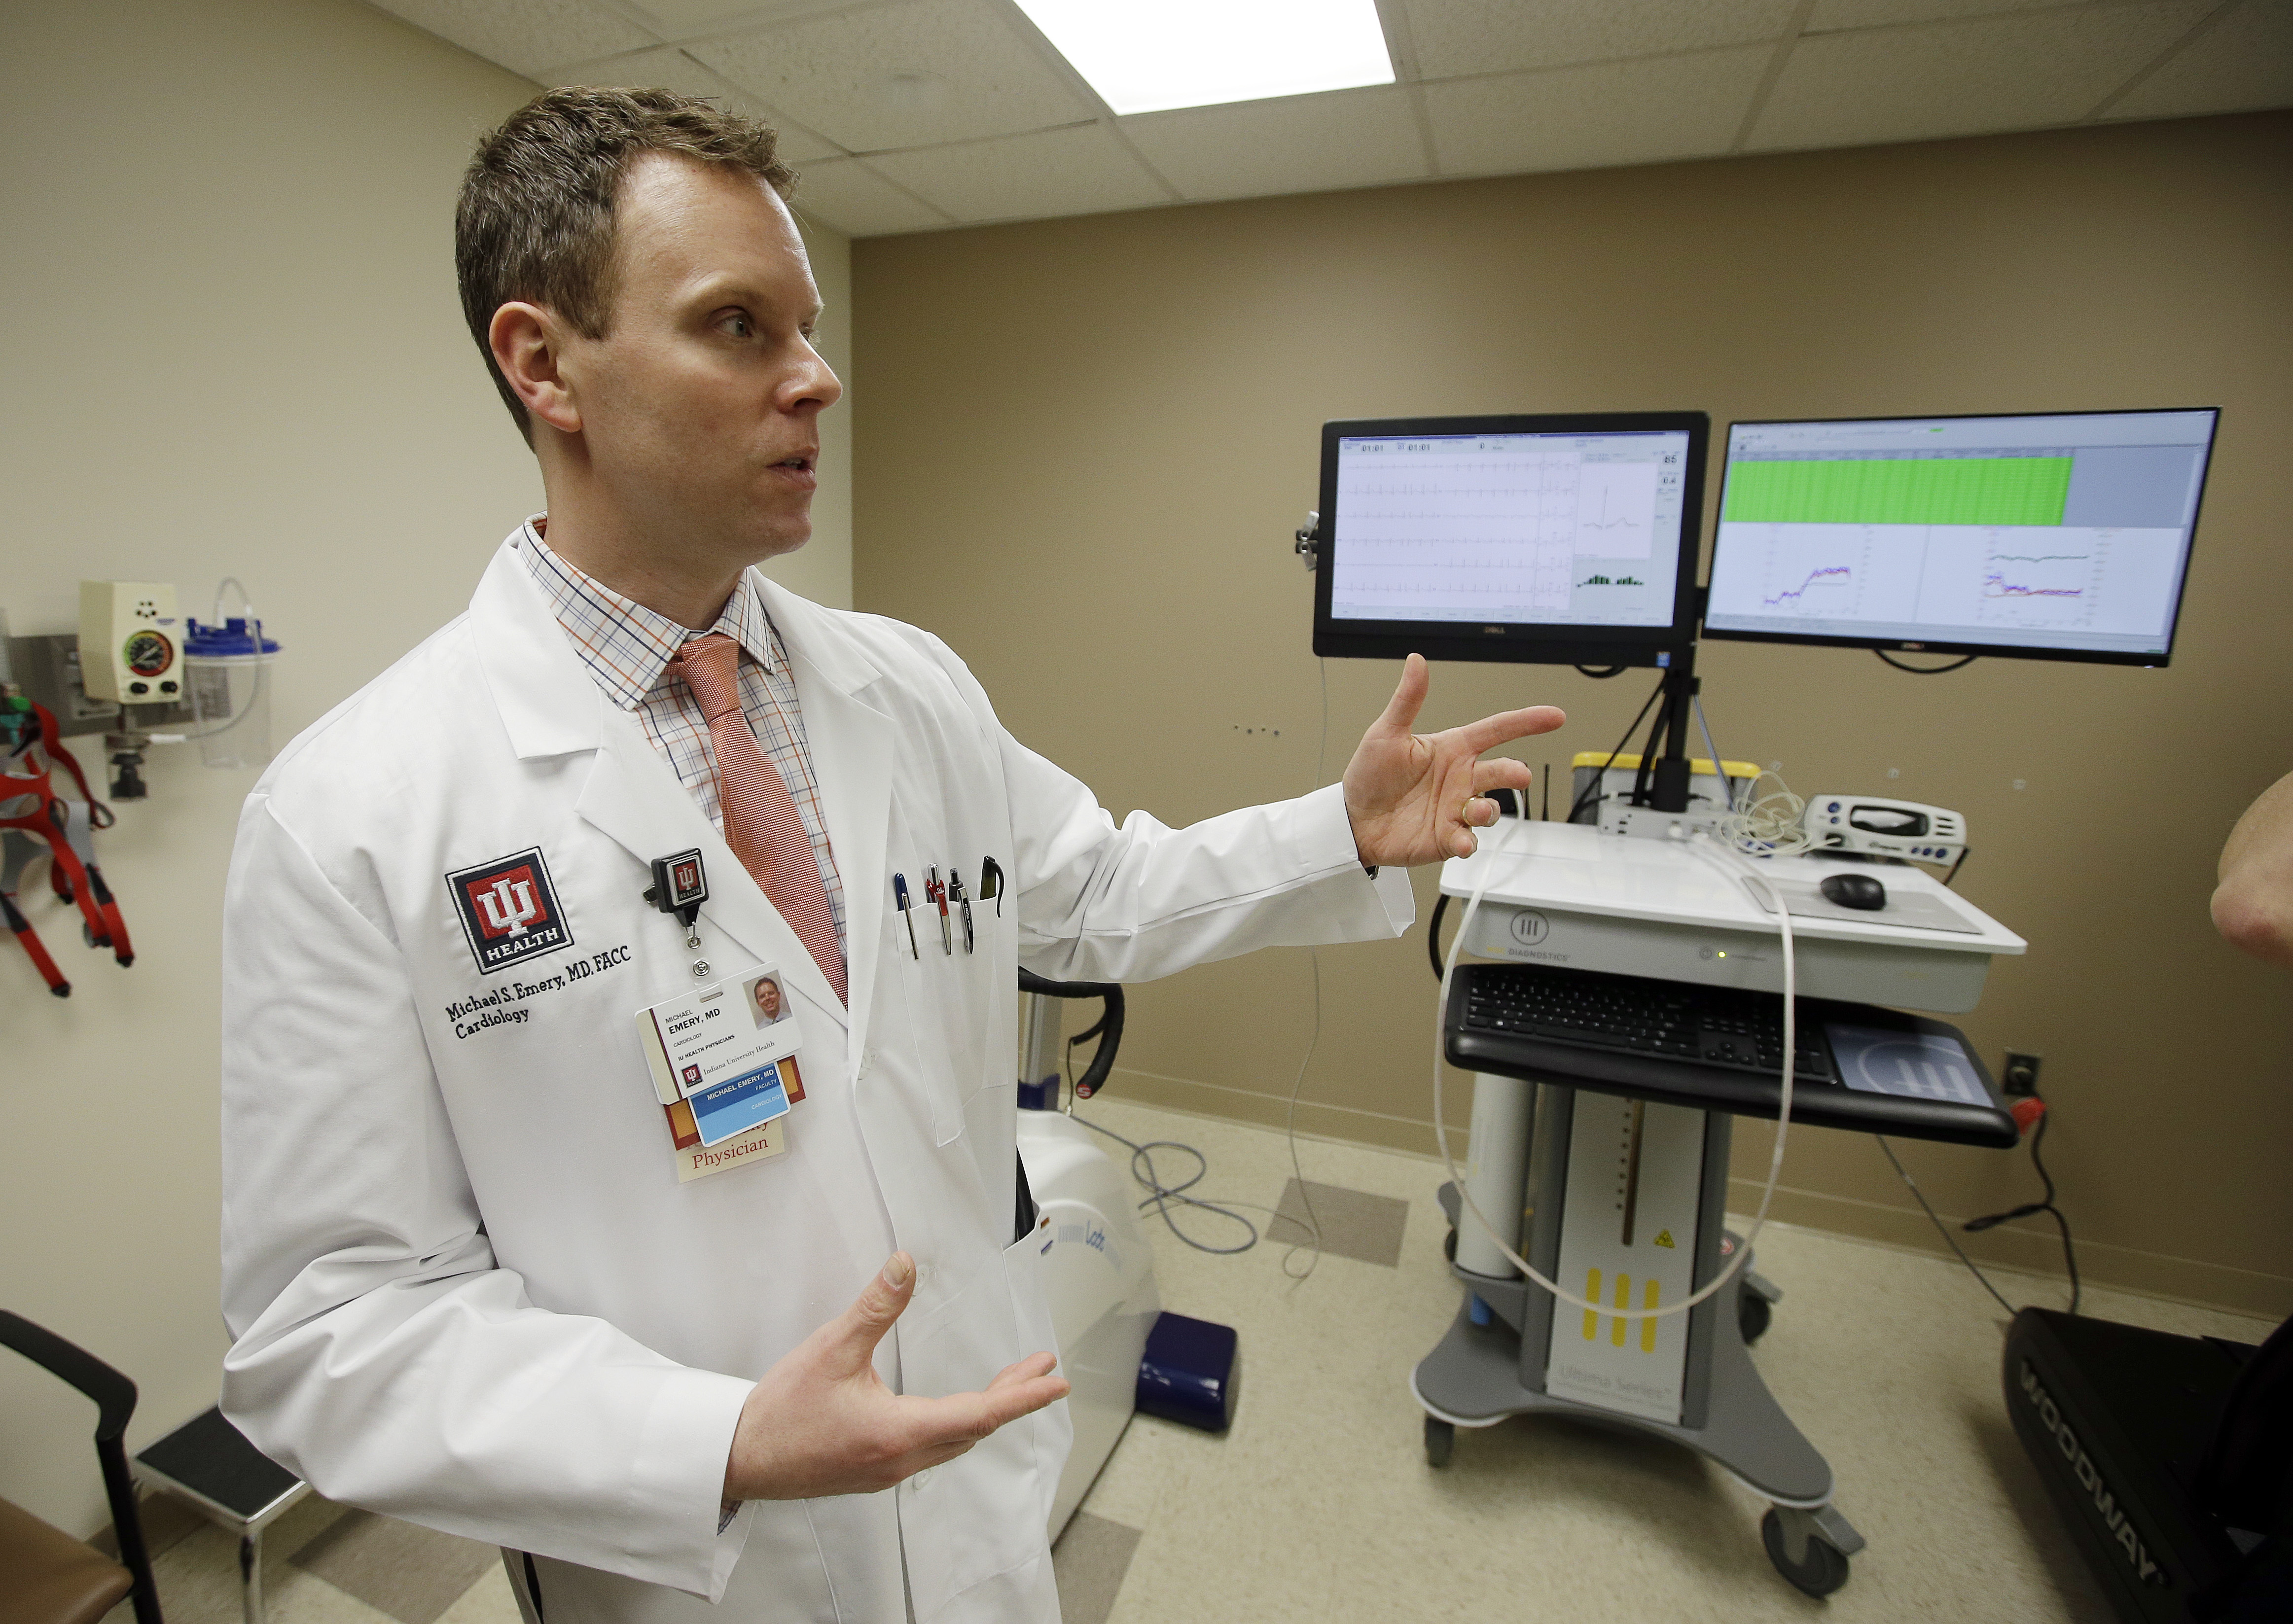 Dr. Michael Emery, medical director for the Center for Cardiovascular Care in Athletics, talks about the Indiana University Health's new sports cardiology performance lab, Thursday, Feb. 25, 2016, in Indianapolis. (AP Photo/Darron Cummings)